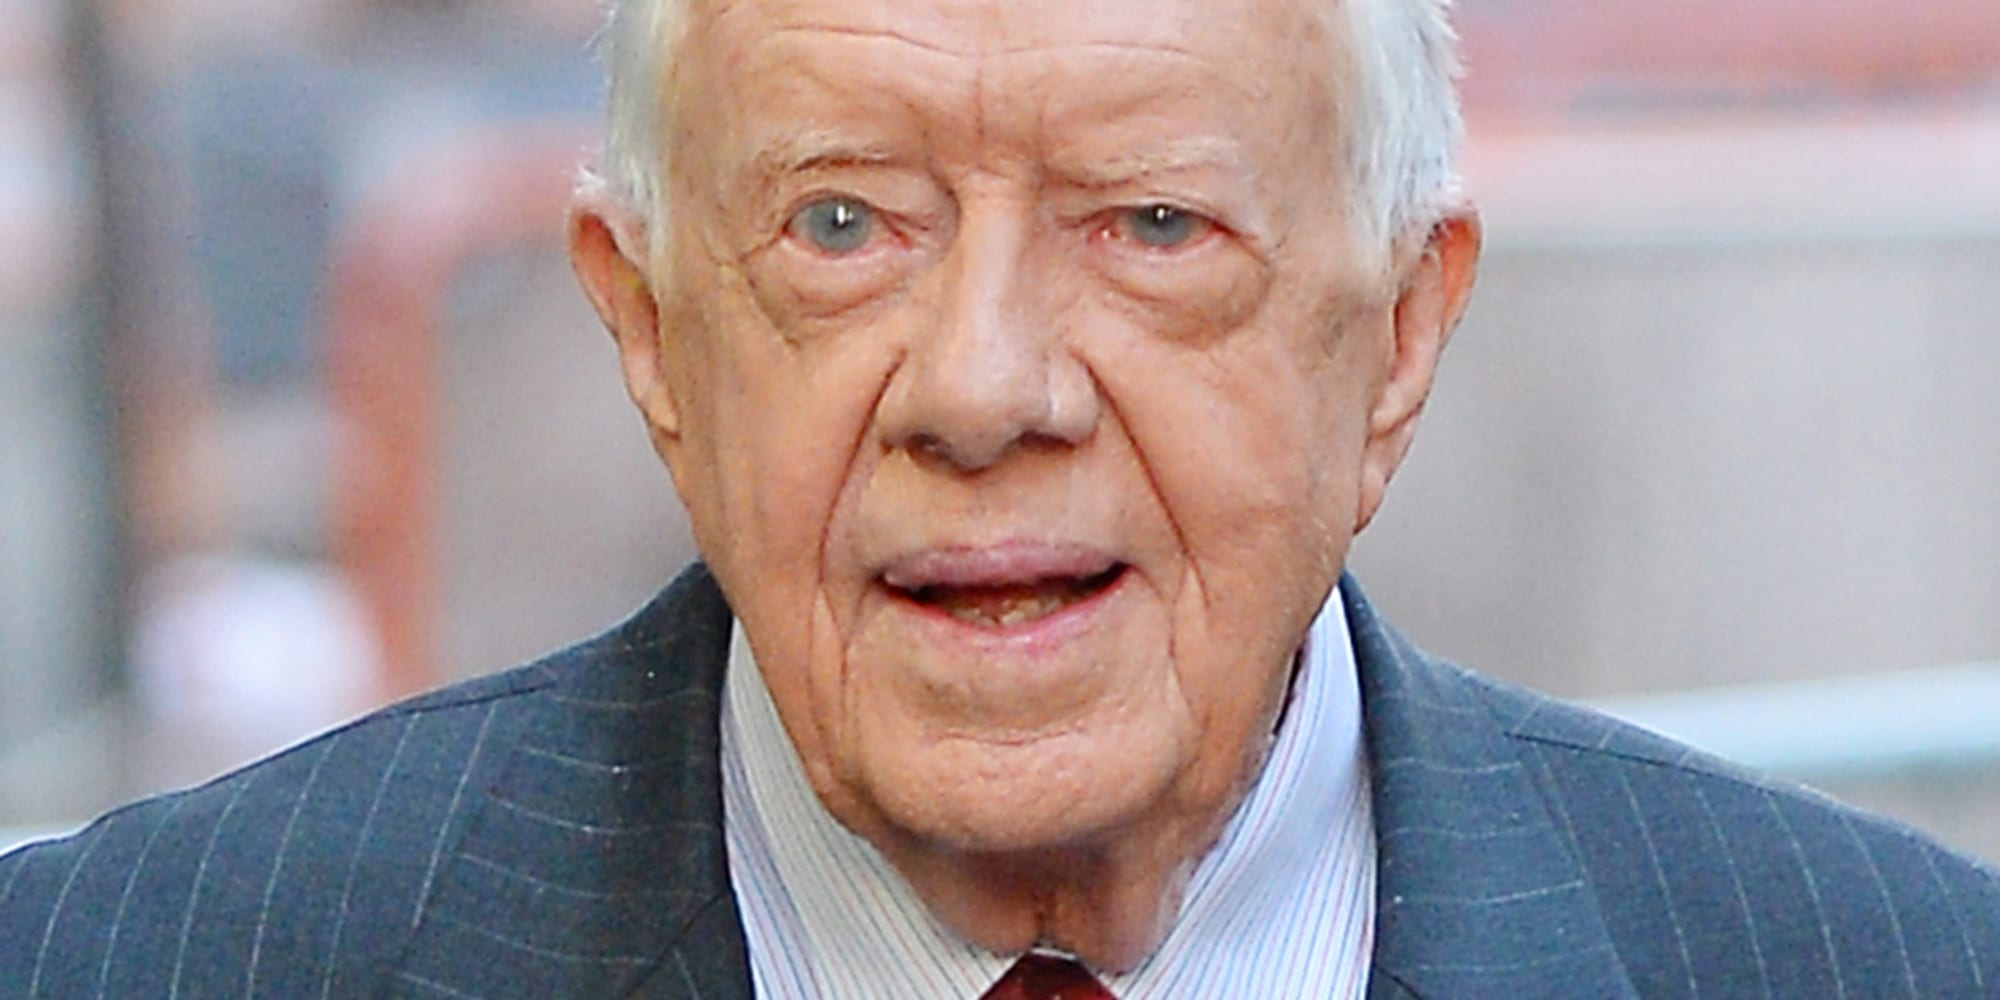 NEW YORK NY - NOVEMBER 05: Former President Jimmy Carter sighting on November 5, 2013 in New York City.  (Photo by Josiah Kamau/BuzzFoto/FilmMagic)